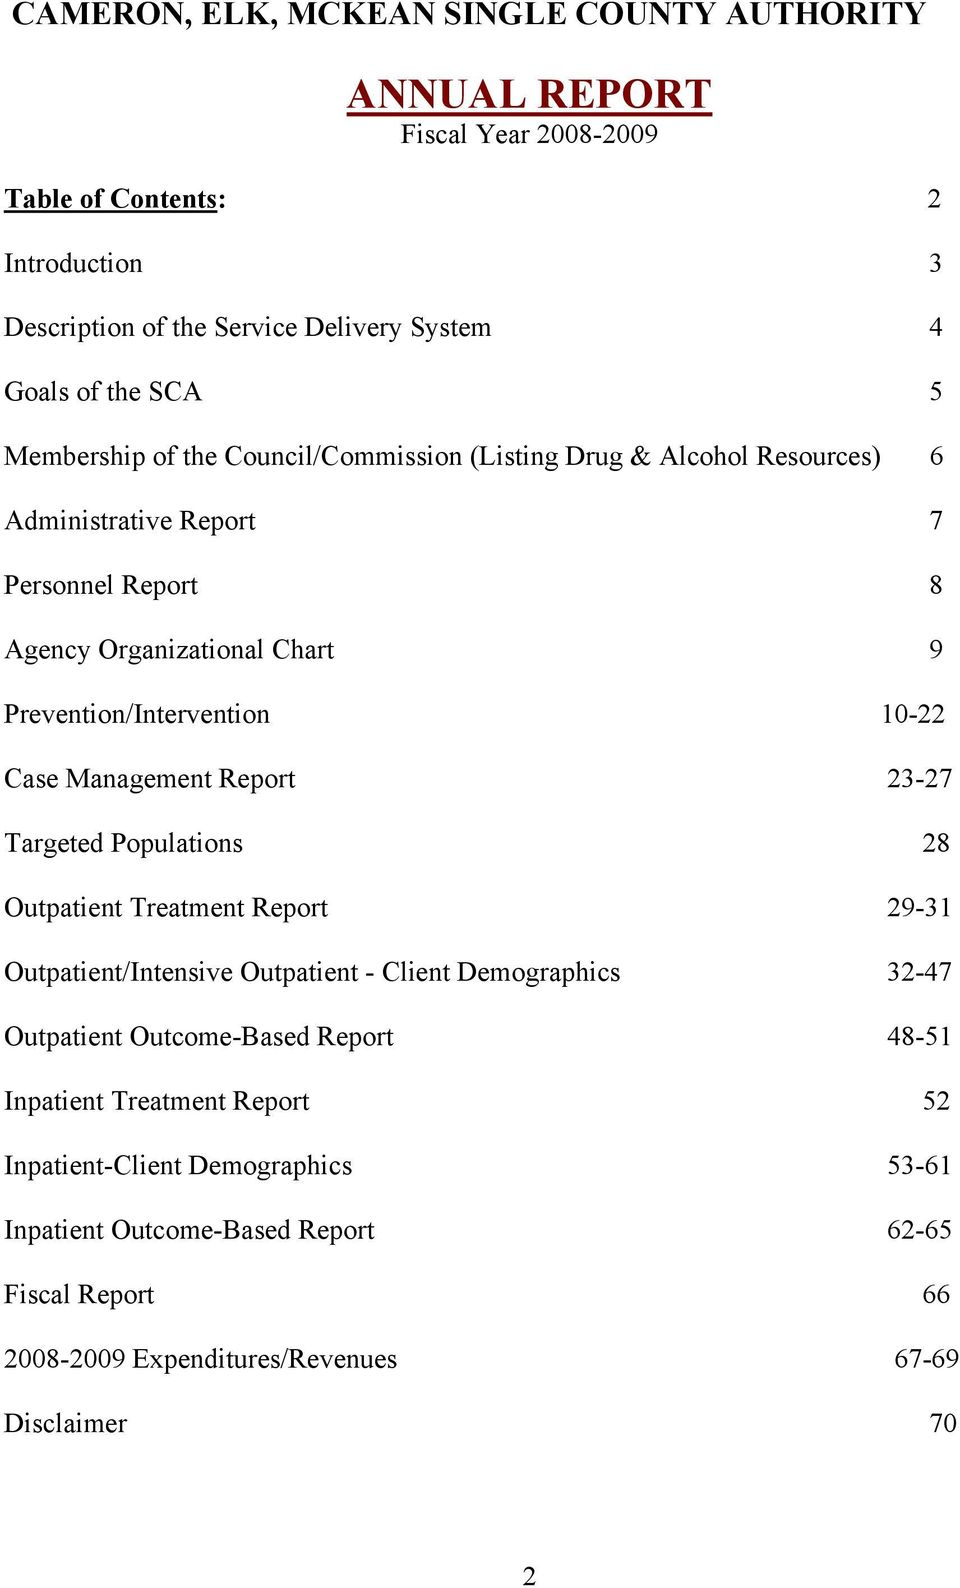 Case Management Report 23-27 Targeted Populations 28 Outpatient Treatment Report 29-31 Outpatient/Intensive Outpatient - Client Demographics 32-47 Outpatient Outcome-Based Report